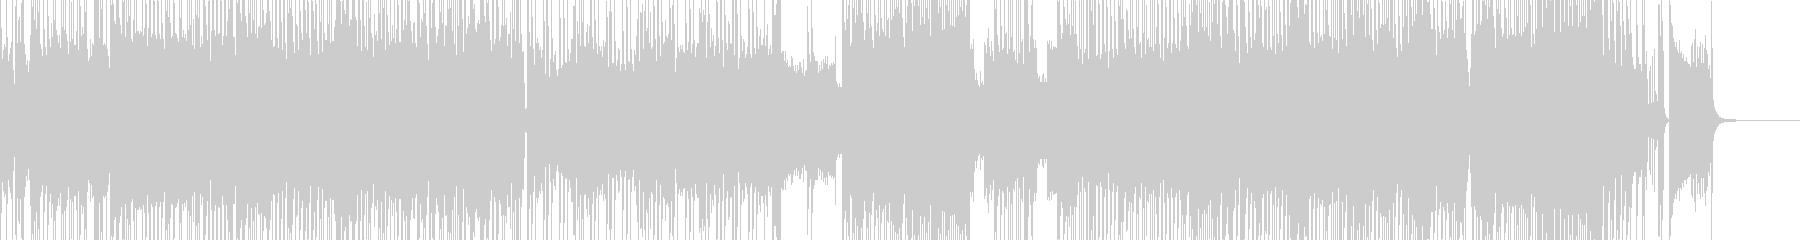 Cartoon style smash rock B2's unreproduced waveform